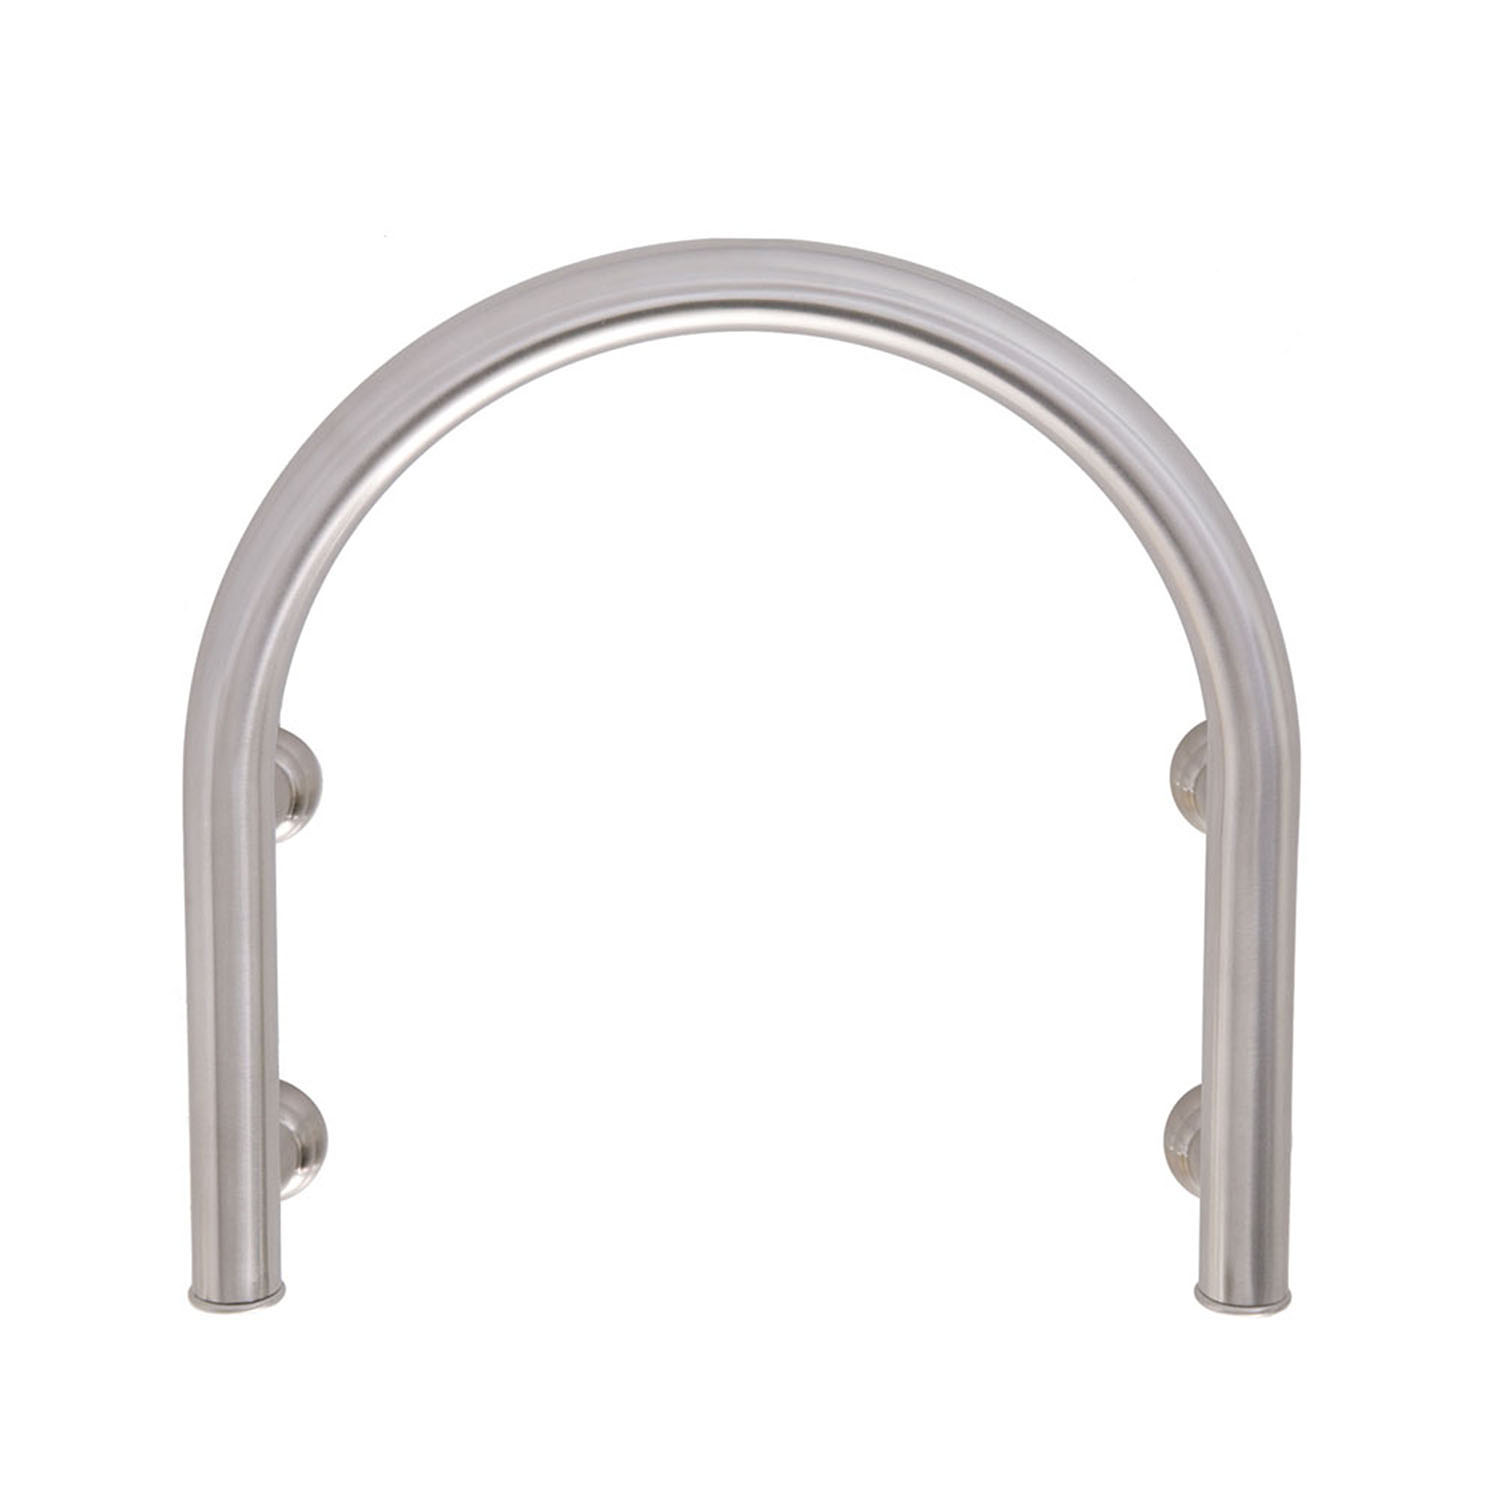 ARISTA® MULTI-Function U-Shaped Safety Assist Bar | Bathroom Fixtures